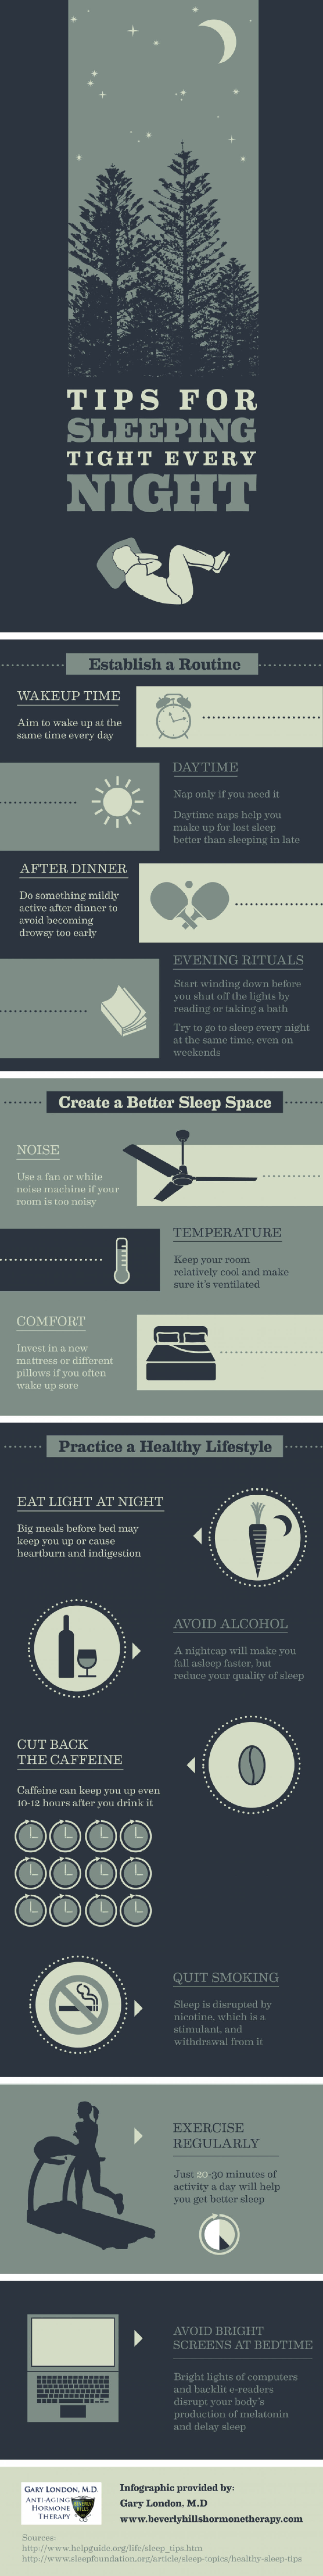 Tips for Sleeping Tight Every Night  Infographic